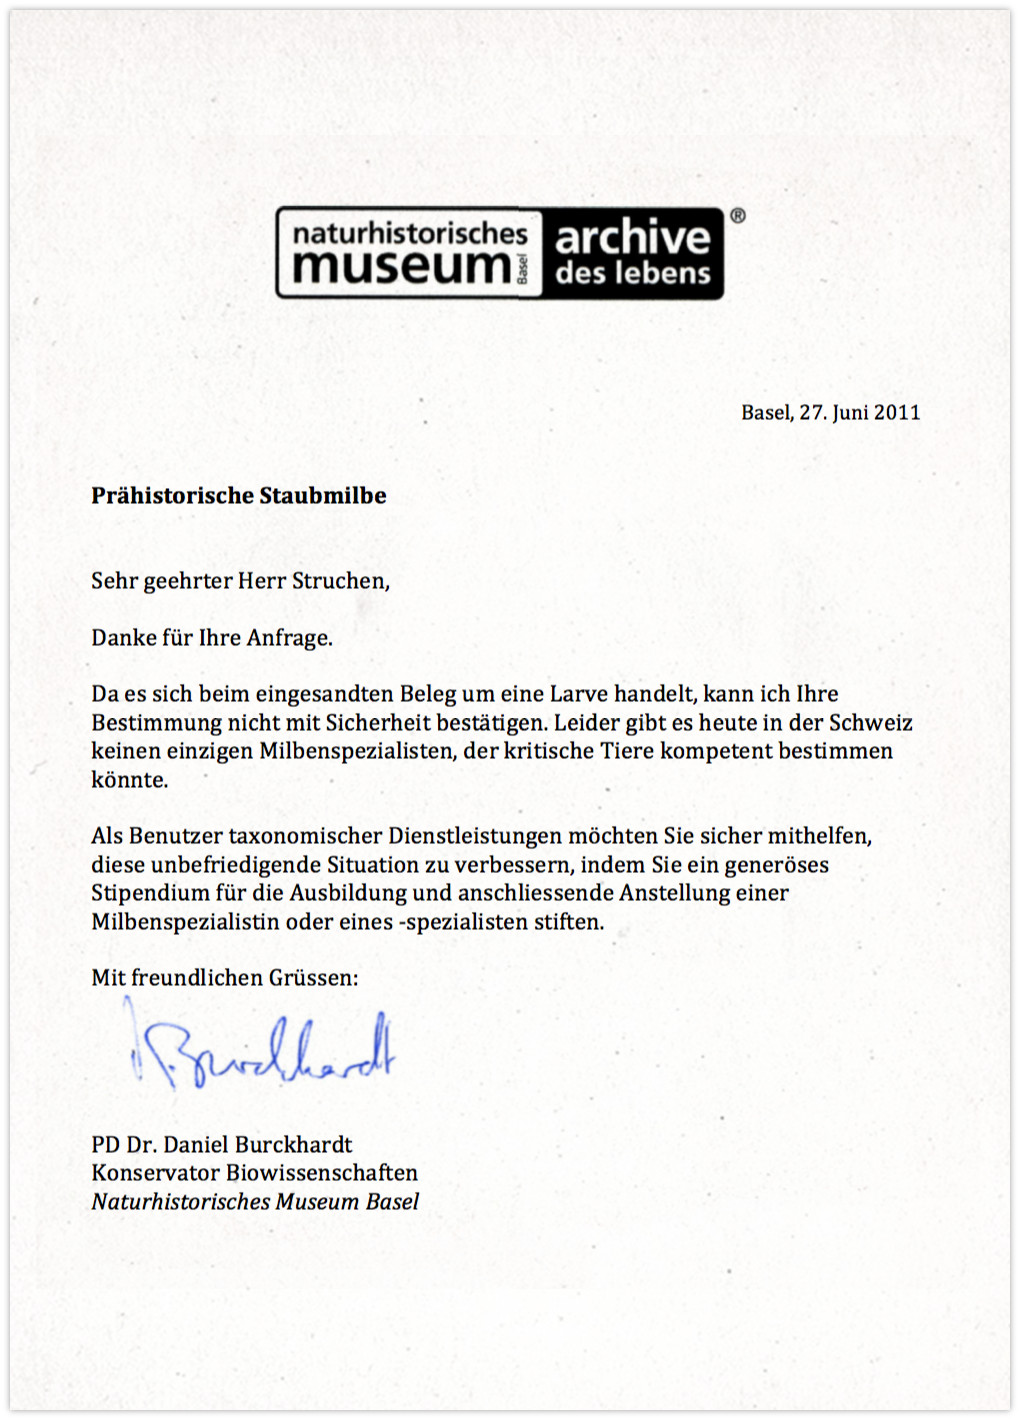 Naturhistorisches Museum - Antwort